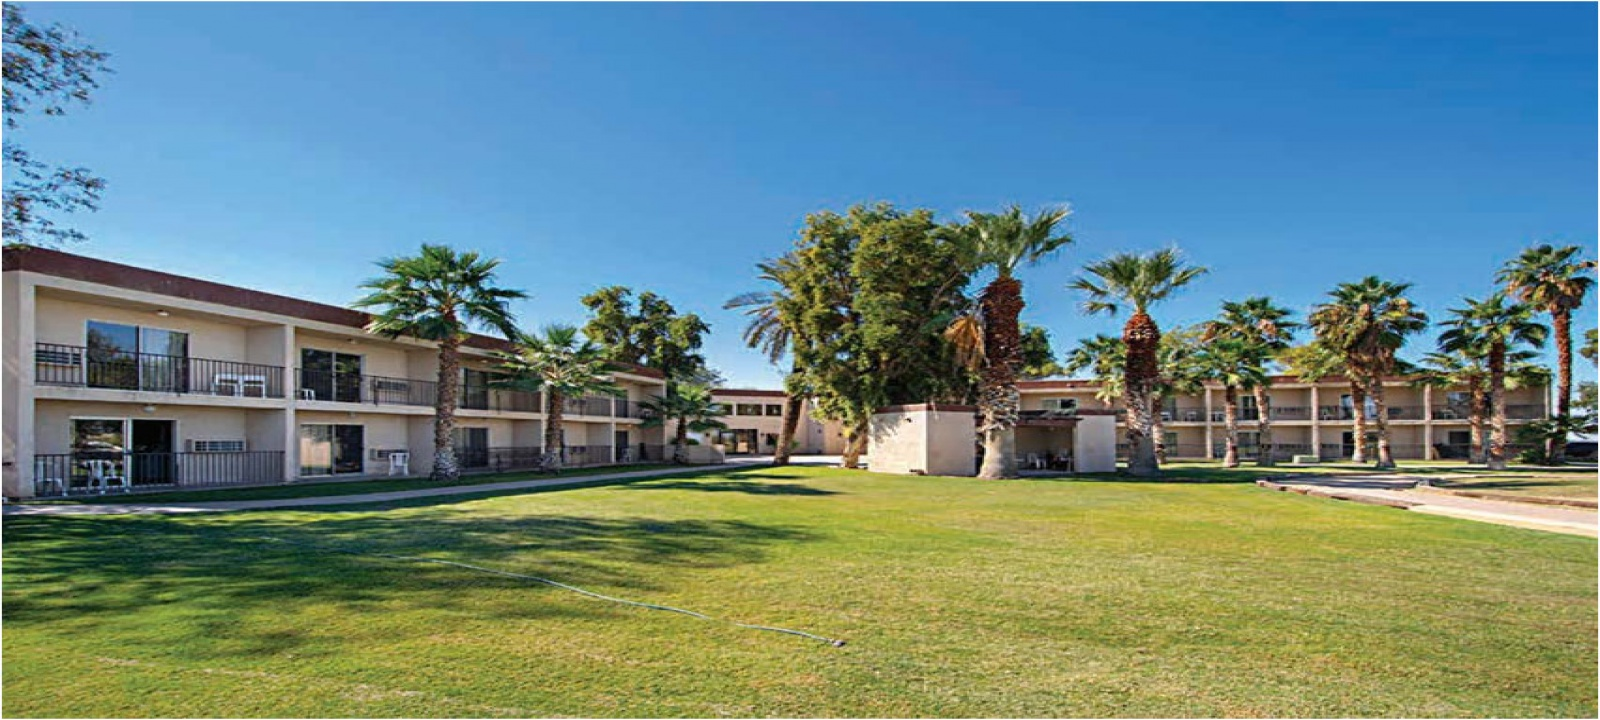 Holtville, California, ,North American Properties,For Sale,1062